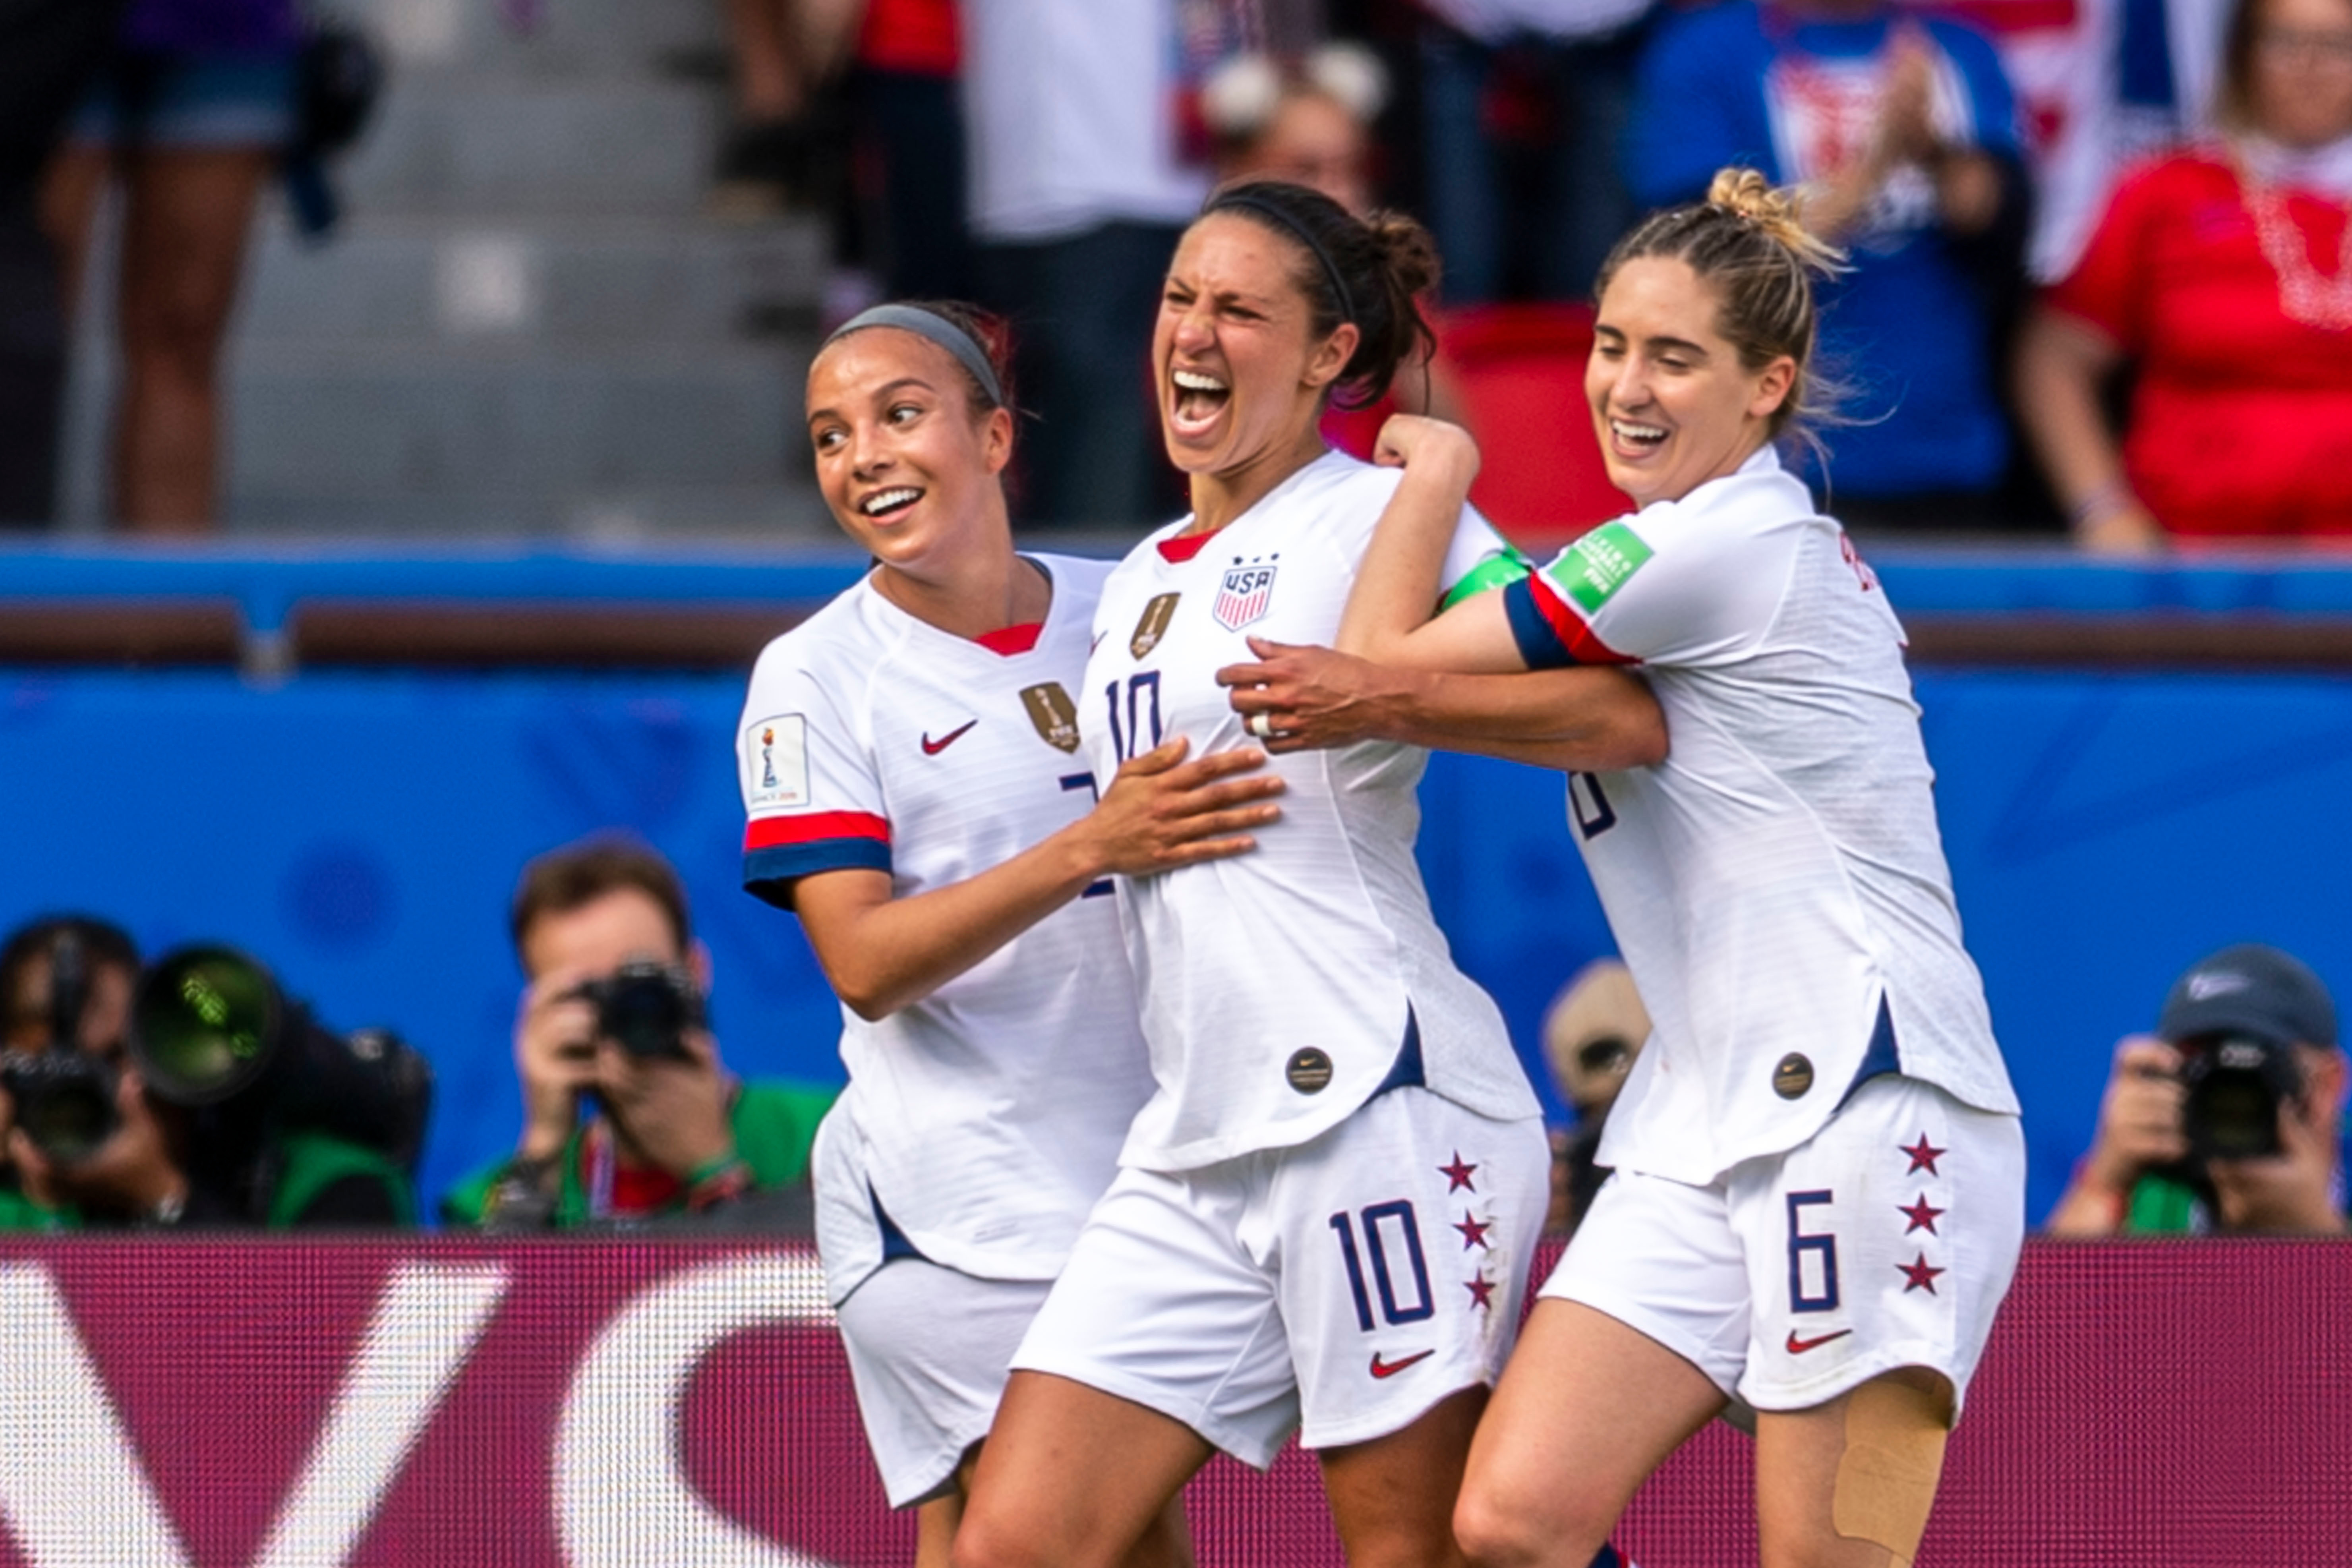 USA Women's Soccer Team Jersey Is Nike's Best-Seller